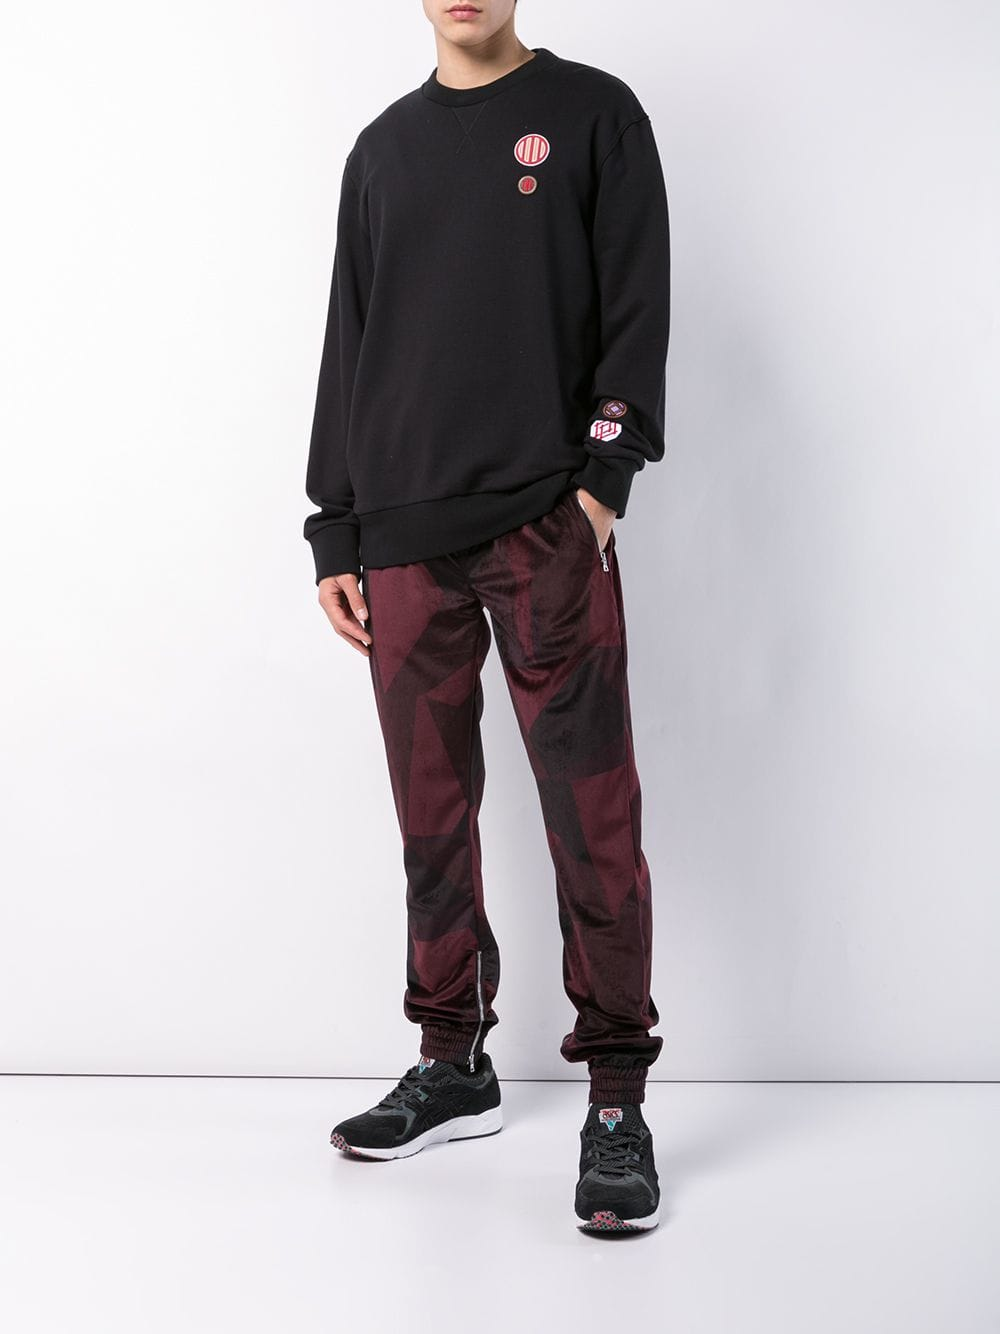 ABSTRACT JOGGER - BURGUNDY